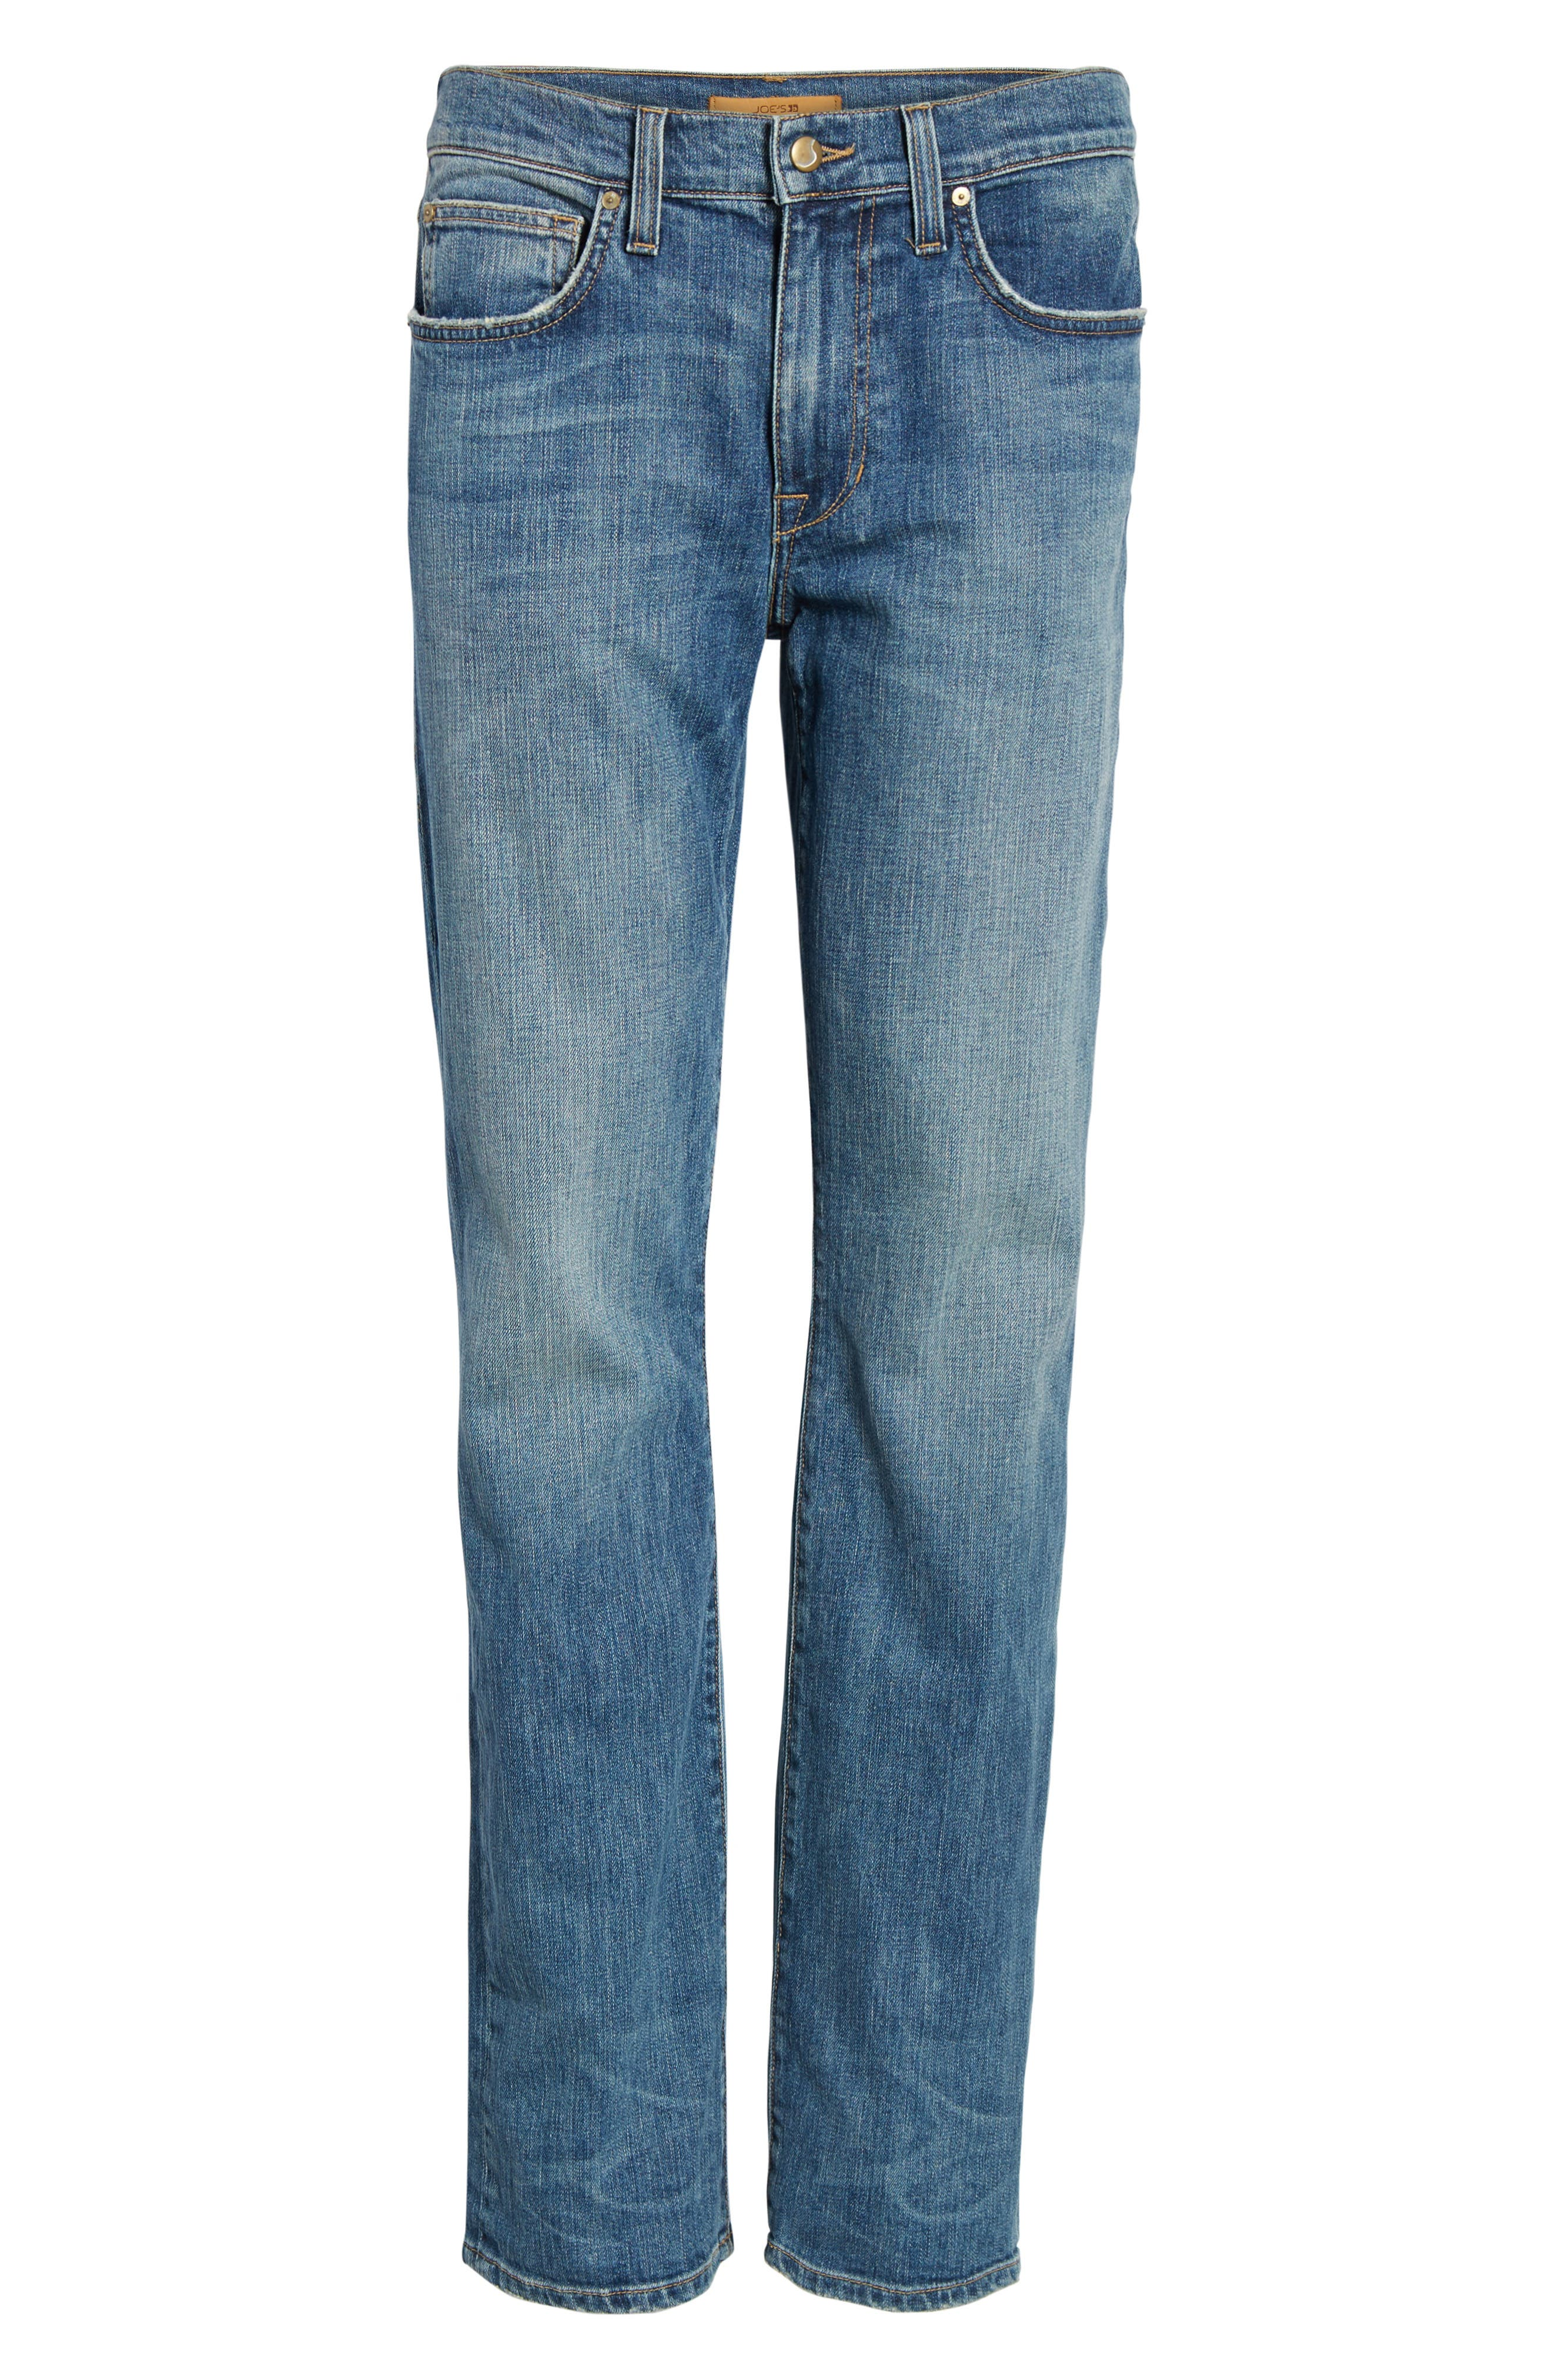 Brixton Slim Straight Fit Jeans,                             Alternate thumbnail 6, color,                             Sheffield